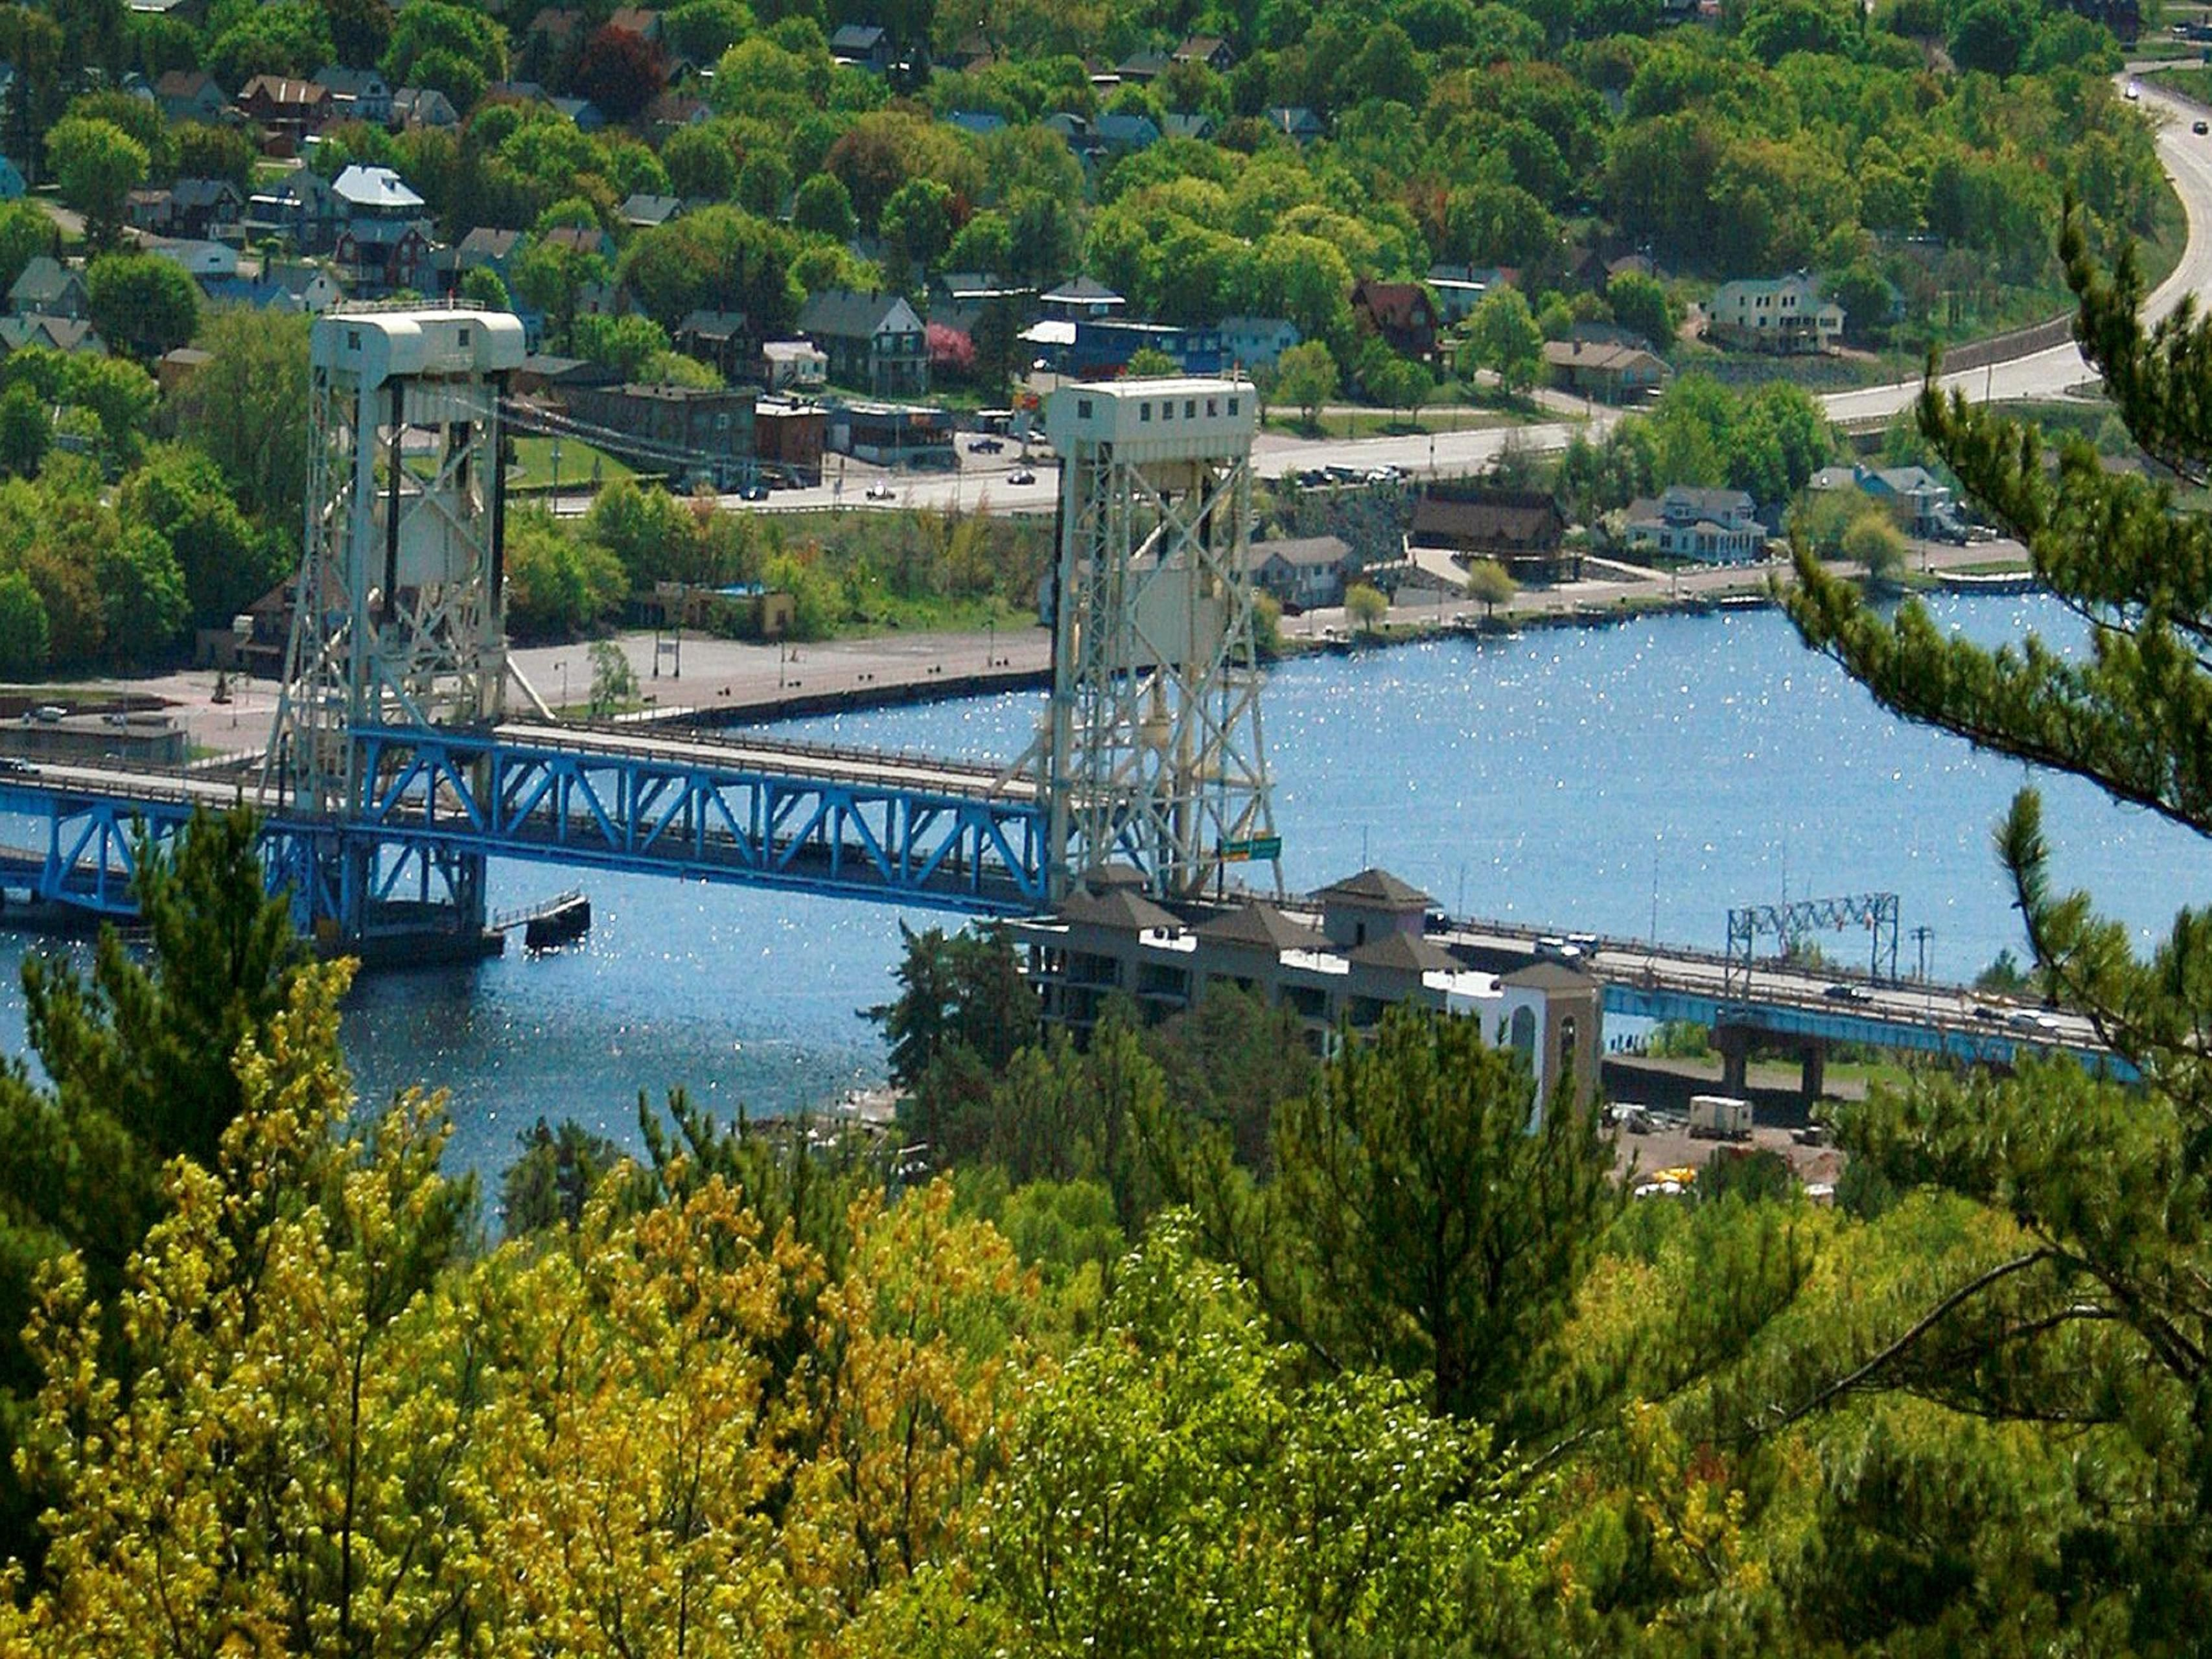 View of Portage Lift Bridge from Quincy Hill